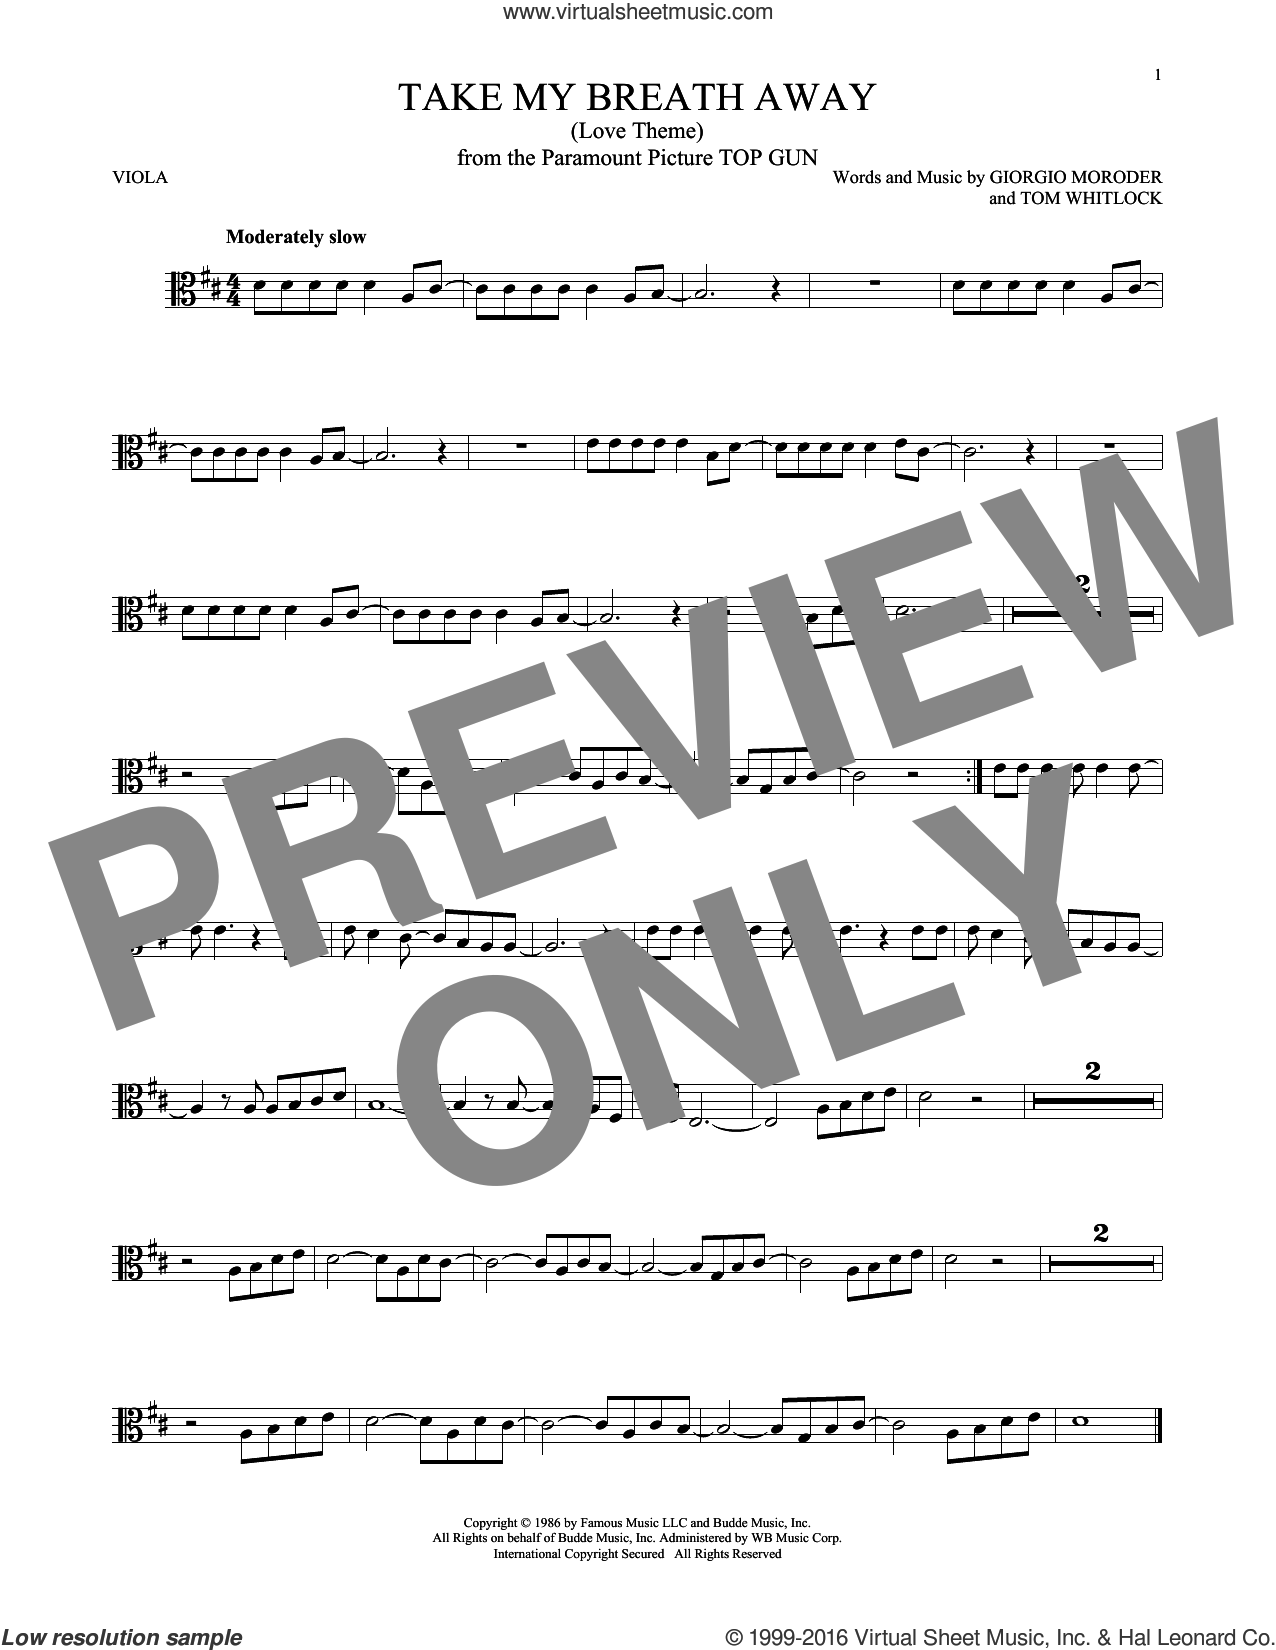 Take My Breath Away (Love Theme) sheet music for viola solo by Tom Whitlock, Berlin, Jessica Simpson and Giorgio Moroder. Score Image Preview.